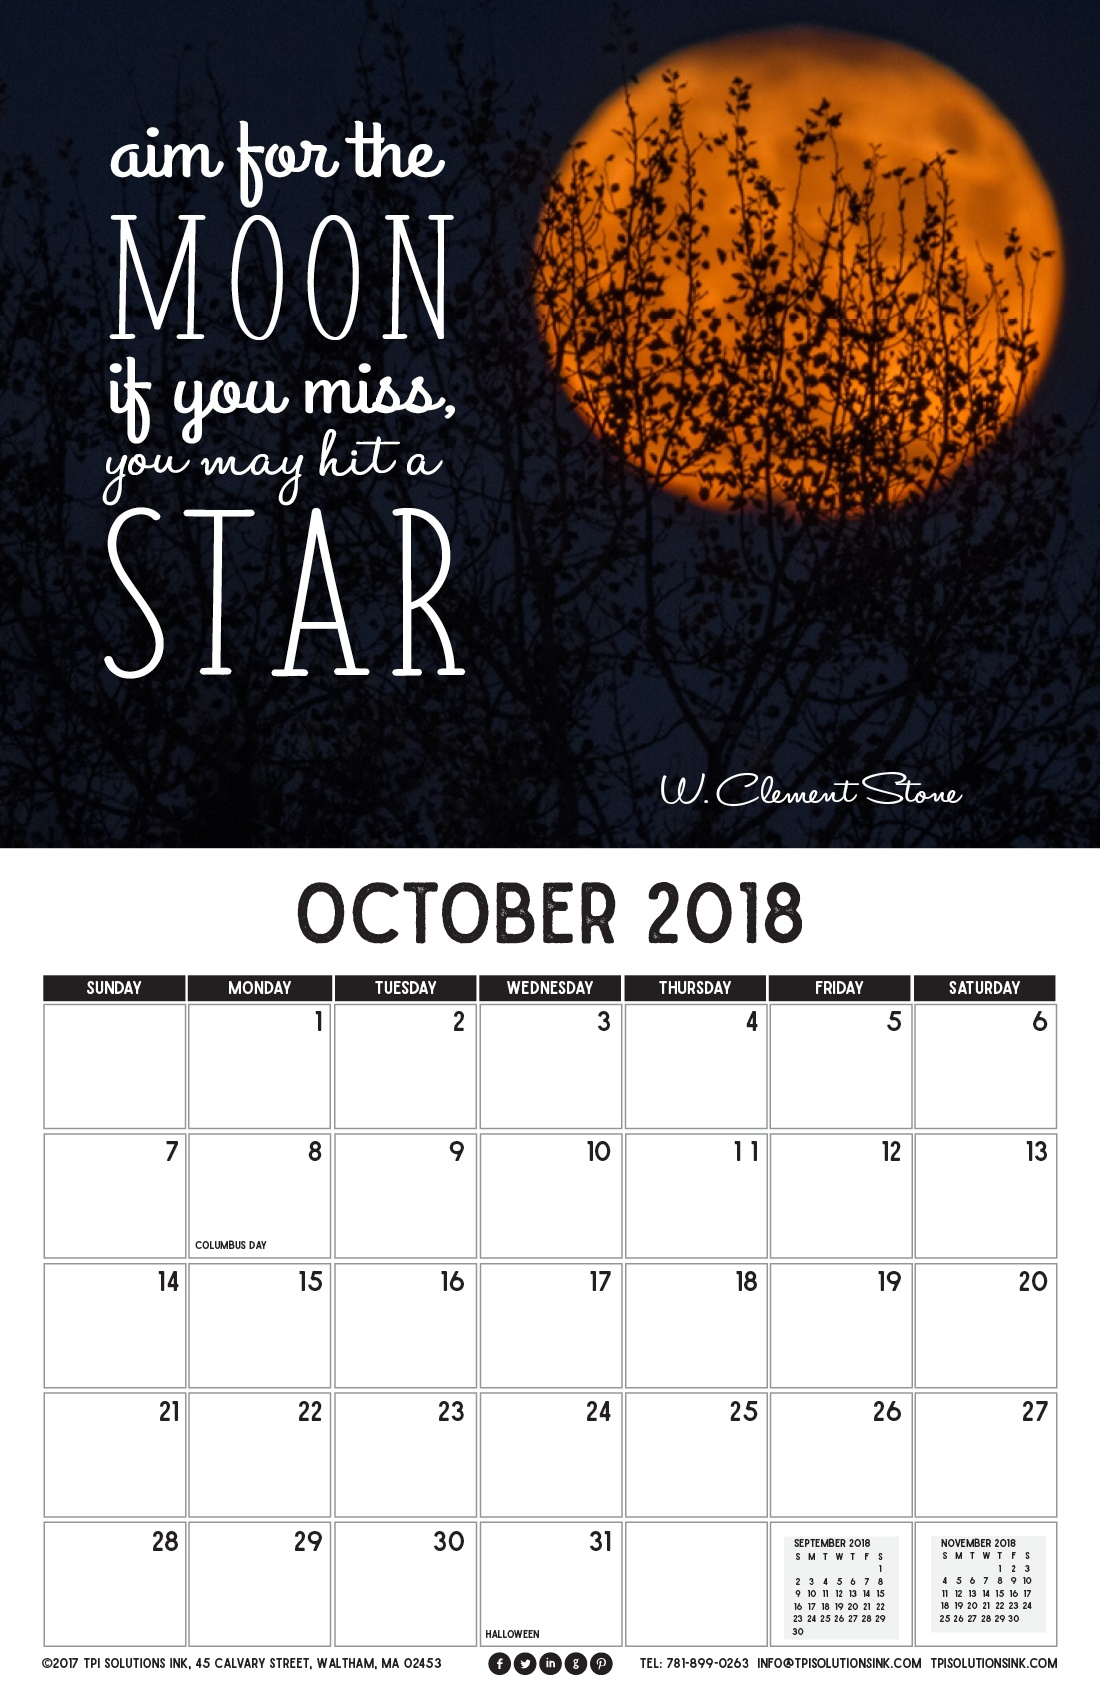 October 2018 Free Calendar Download - Printable